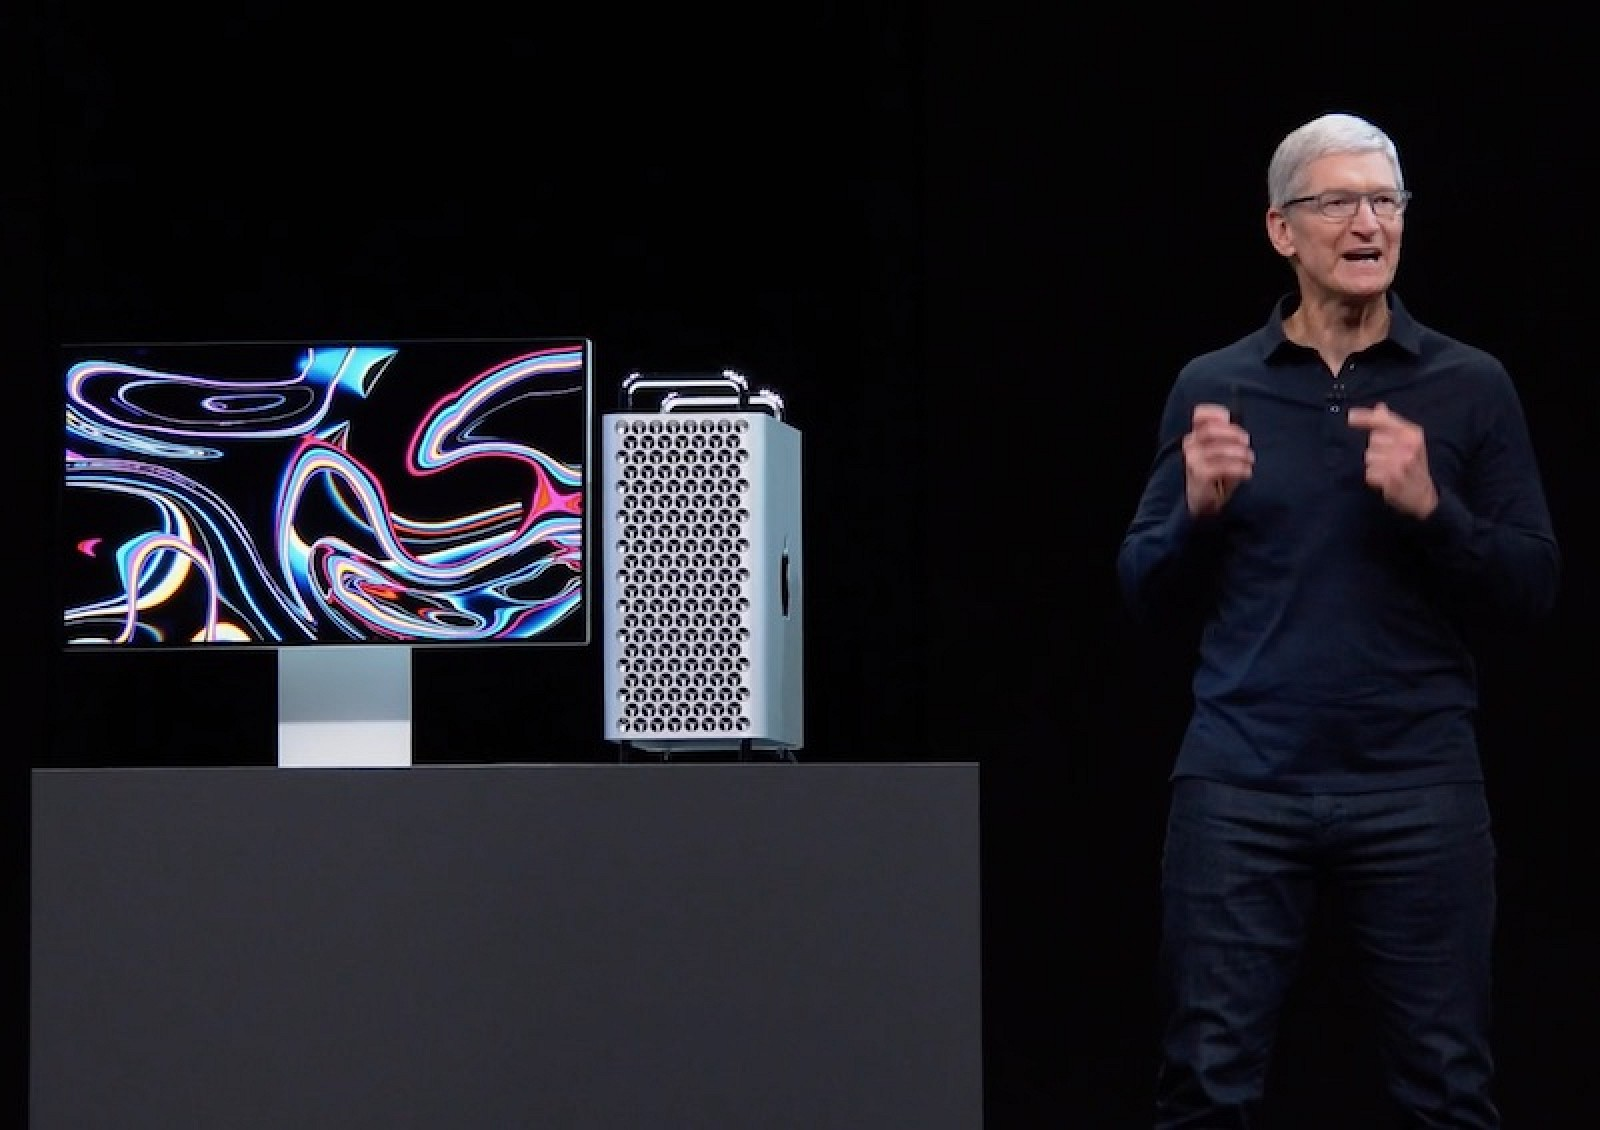 Apple Reveals All-New Mac Pro With Up to 28-Core Processor